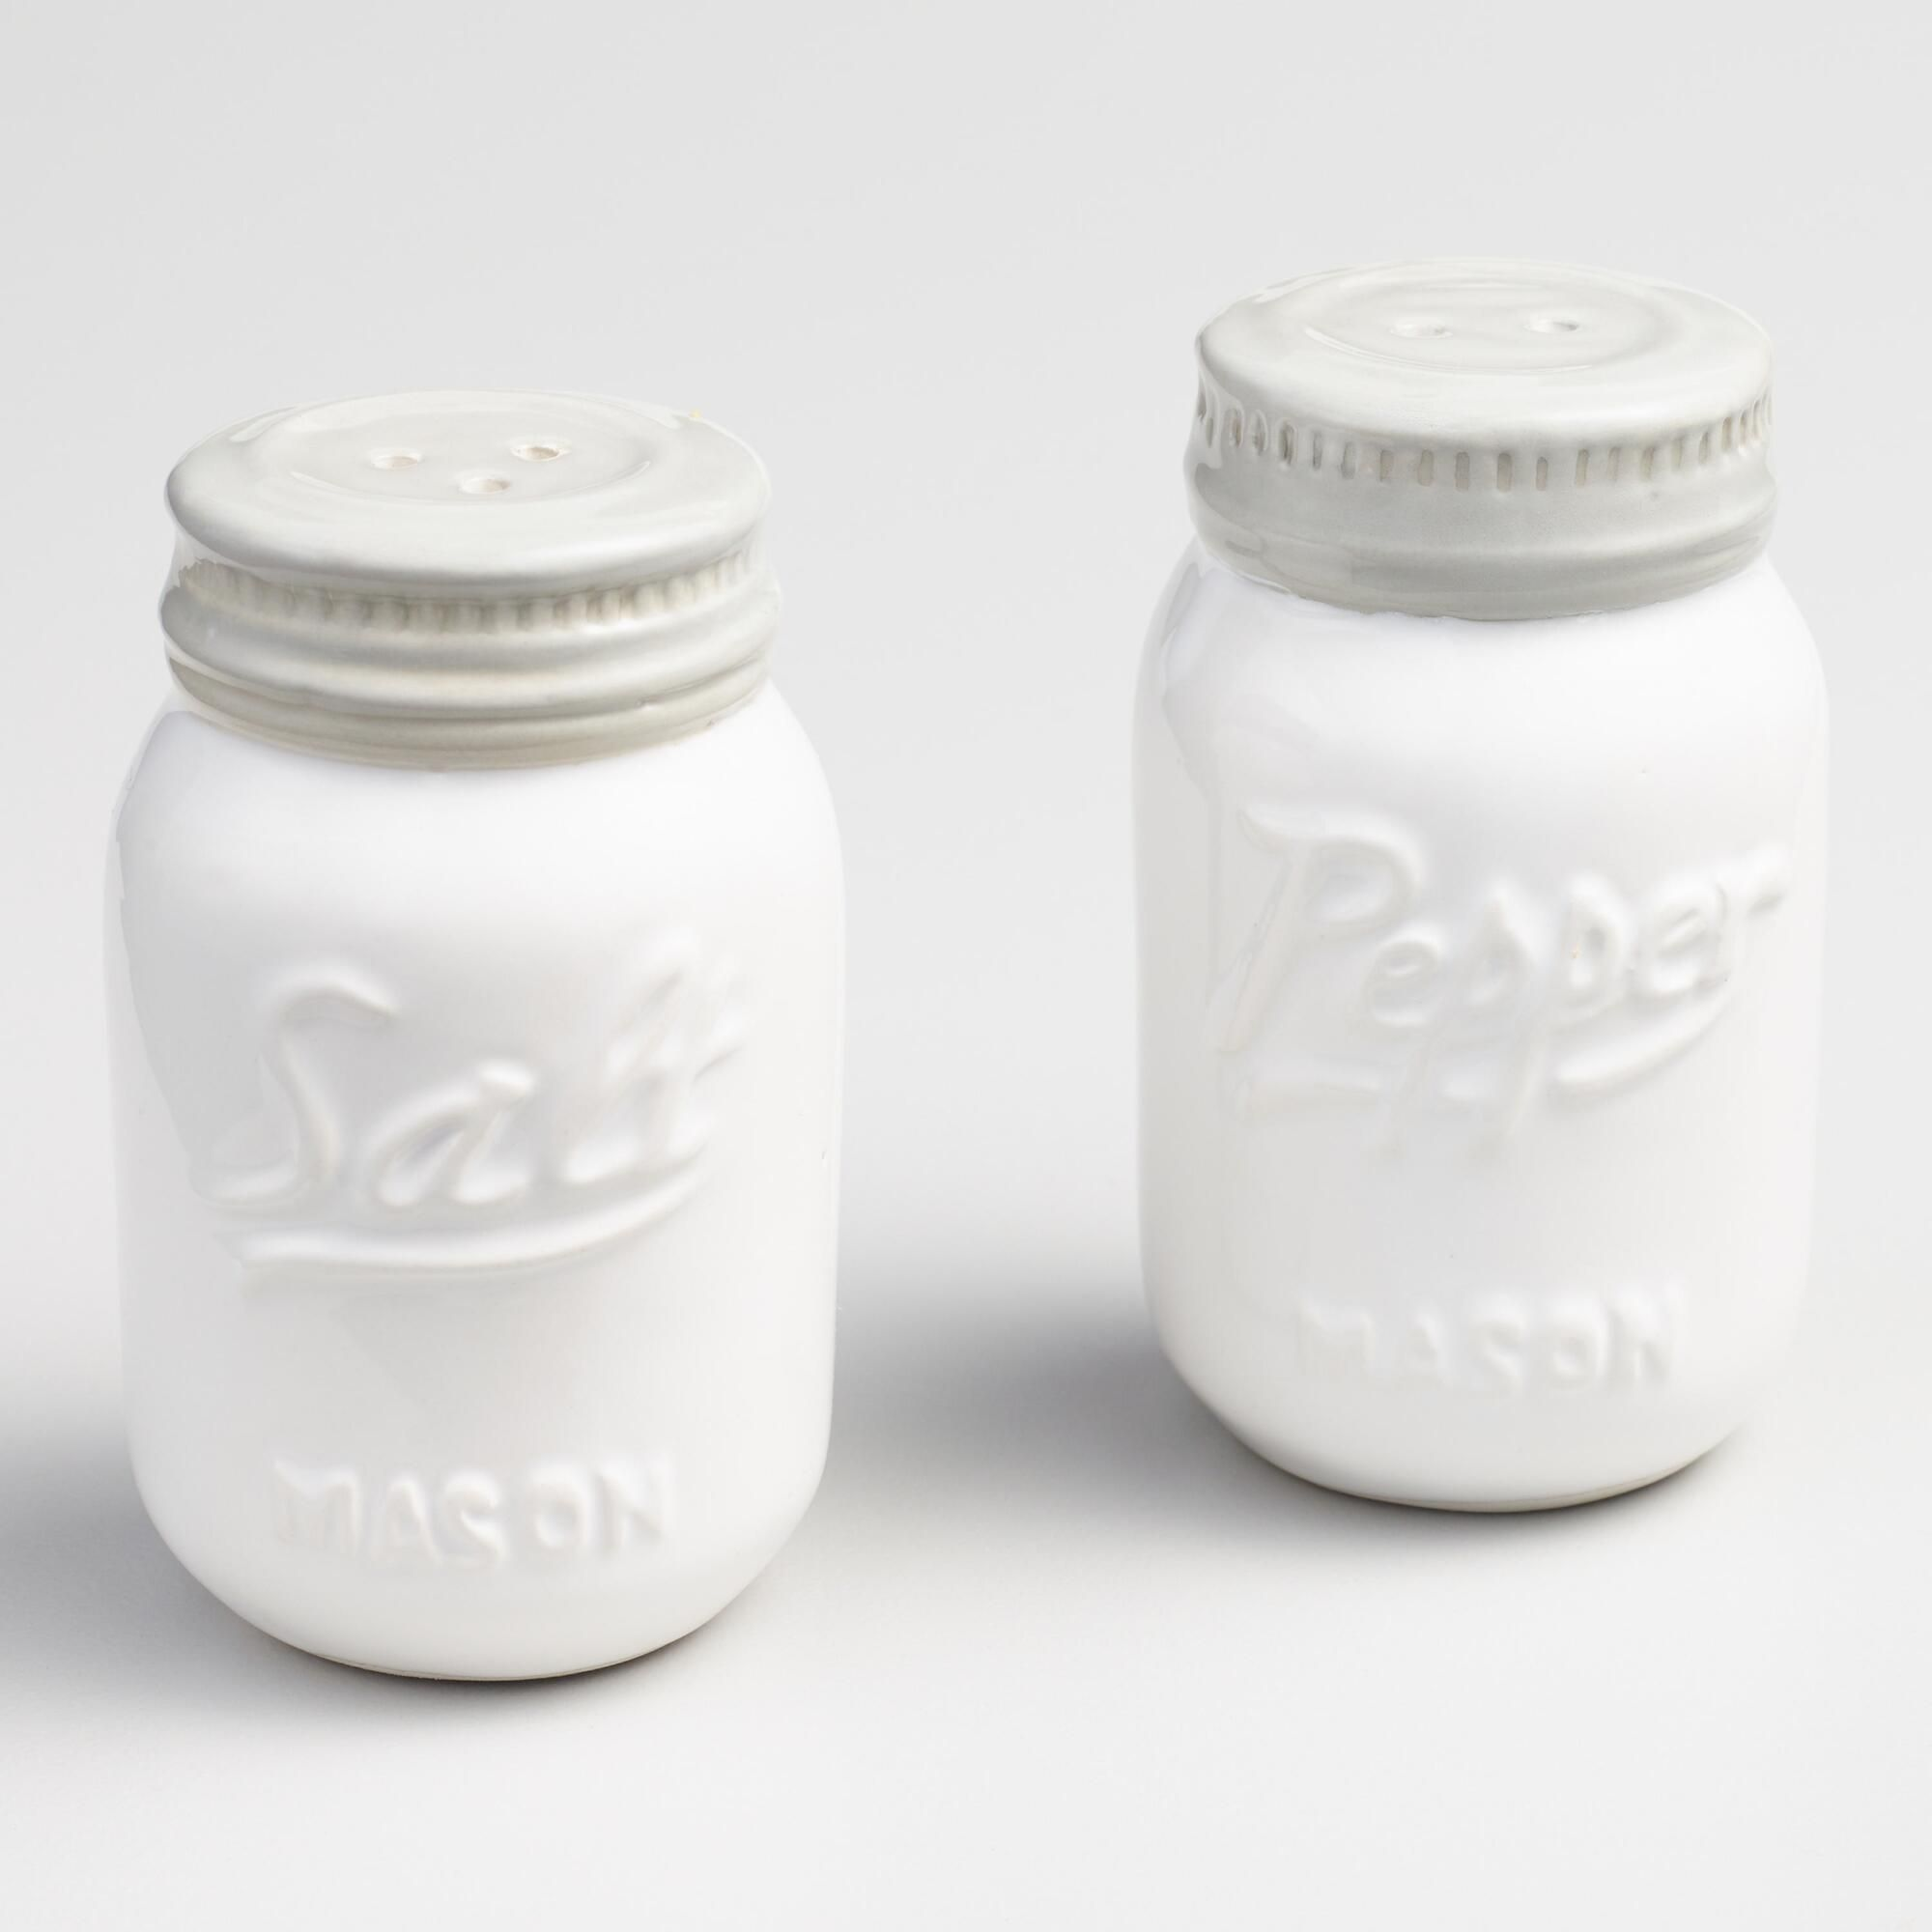 A Great Retro Chic Gift For Collectors Our White Mason Jar Salt And Pepper Shakers Add A Vintage Inspired Look To The Tabletop Www Worldm Mason Jars Mason Jar Kitchen Salt Pepper